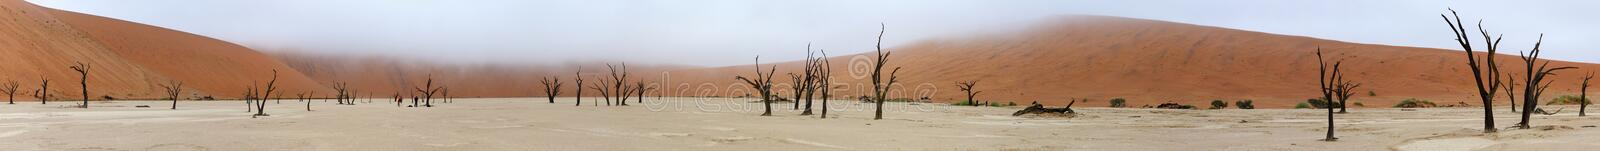 Deadvlei Panorama stockbild